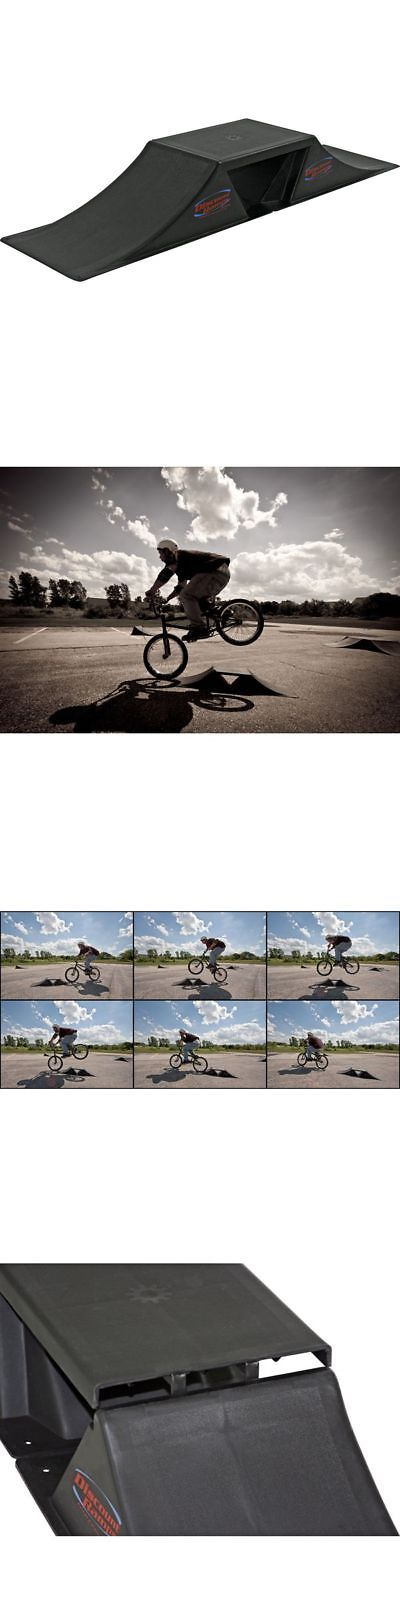 1006 Best Ramps And Rails 91565 Images On Pinterest